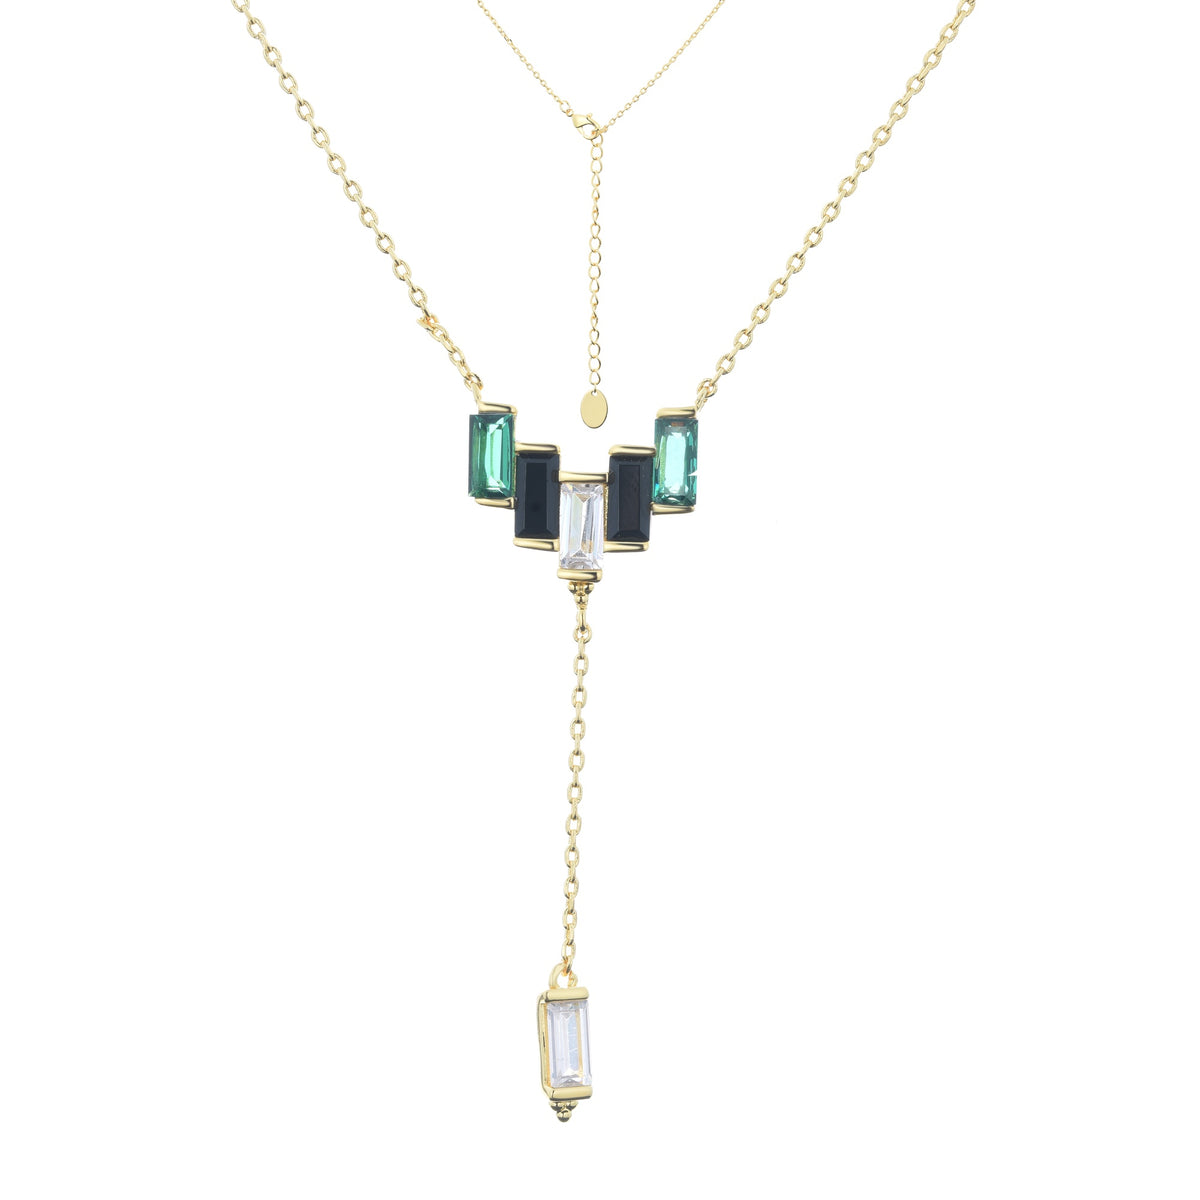 Ferentina | Mousse Necklace | 925 Silver | White & Black & Green CZ | 18K Gold Plated